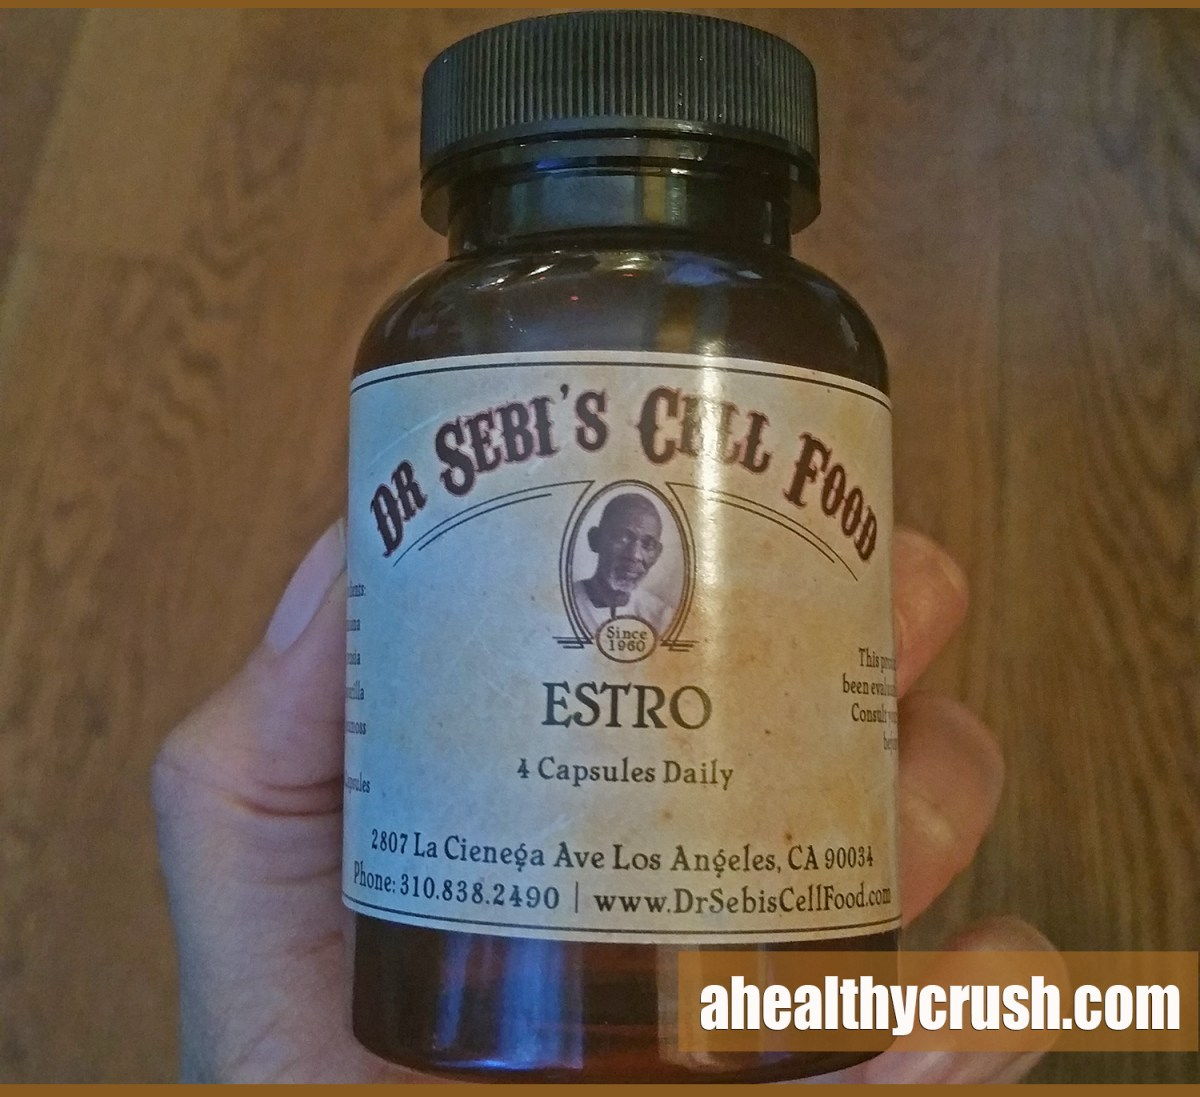 REVIEW | Dr. Sebi's Estro - Does It Make You Horny?